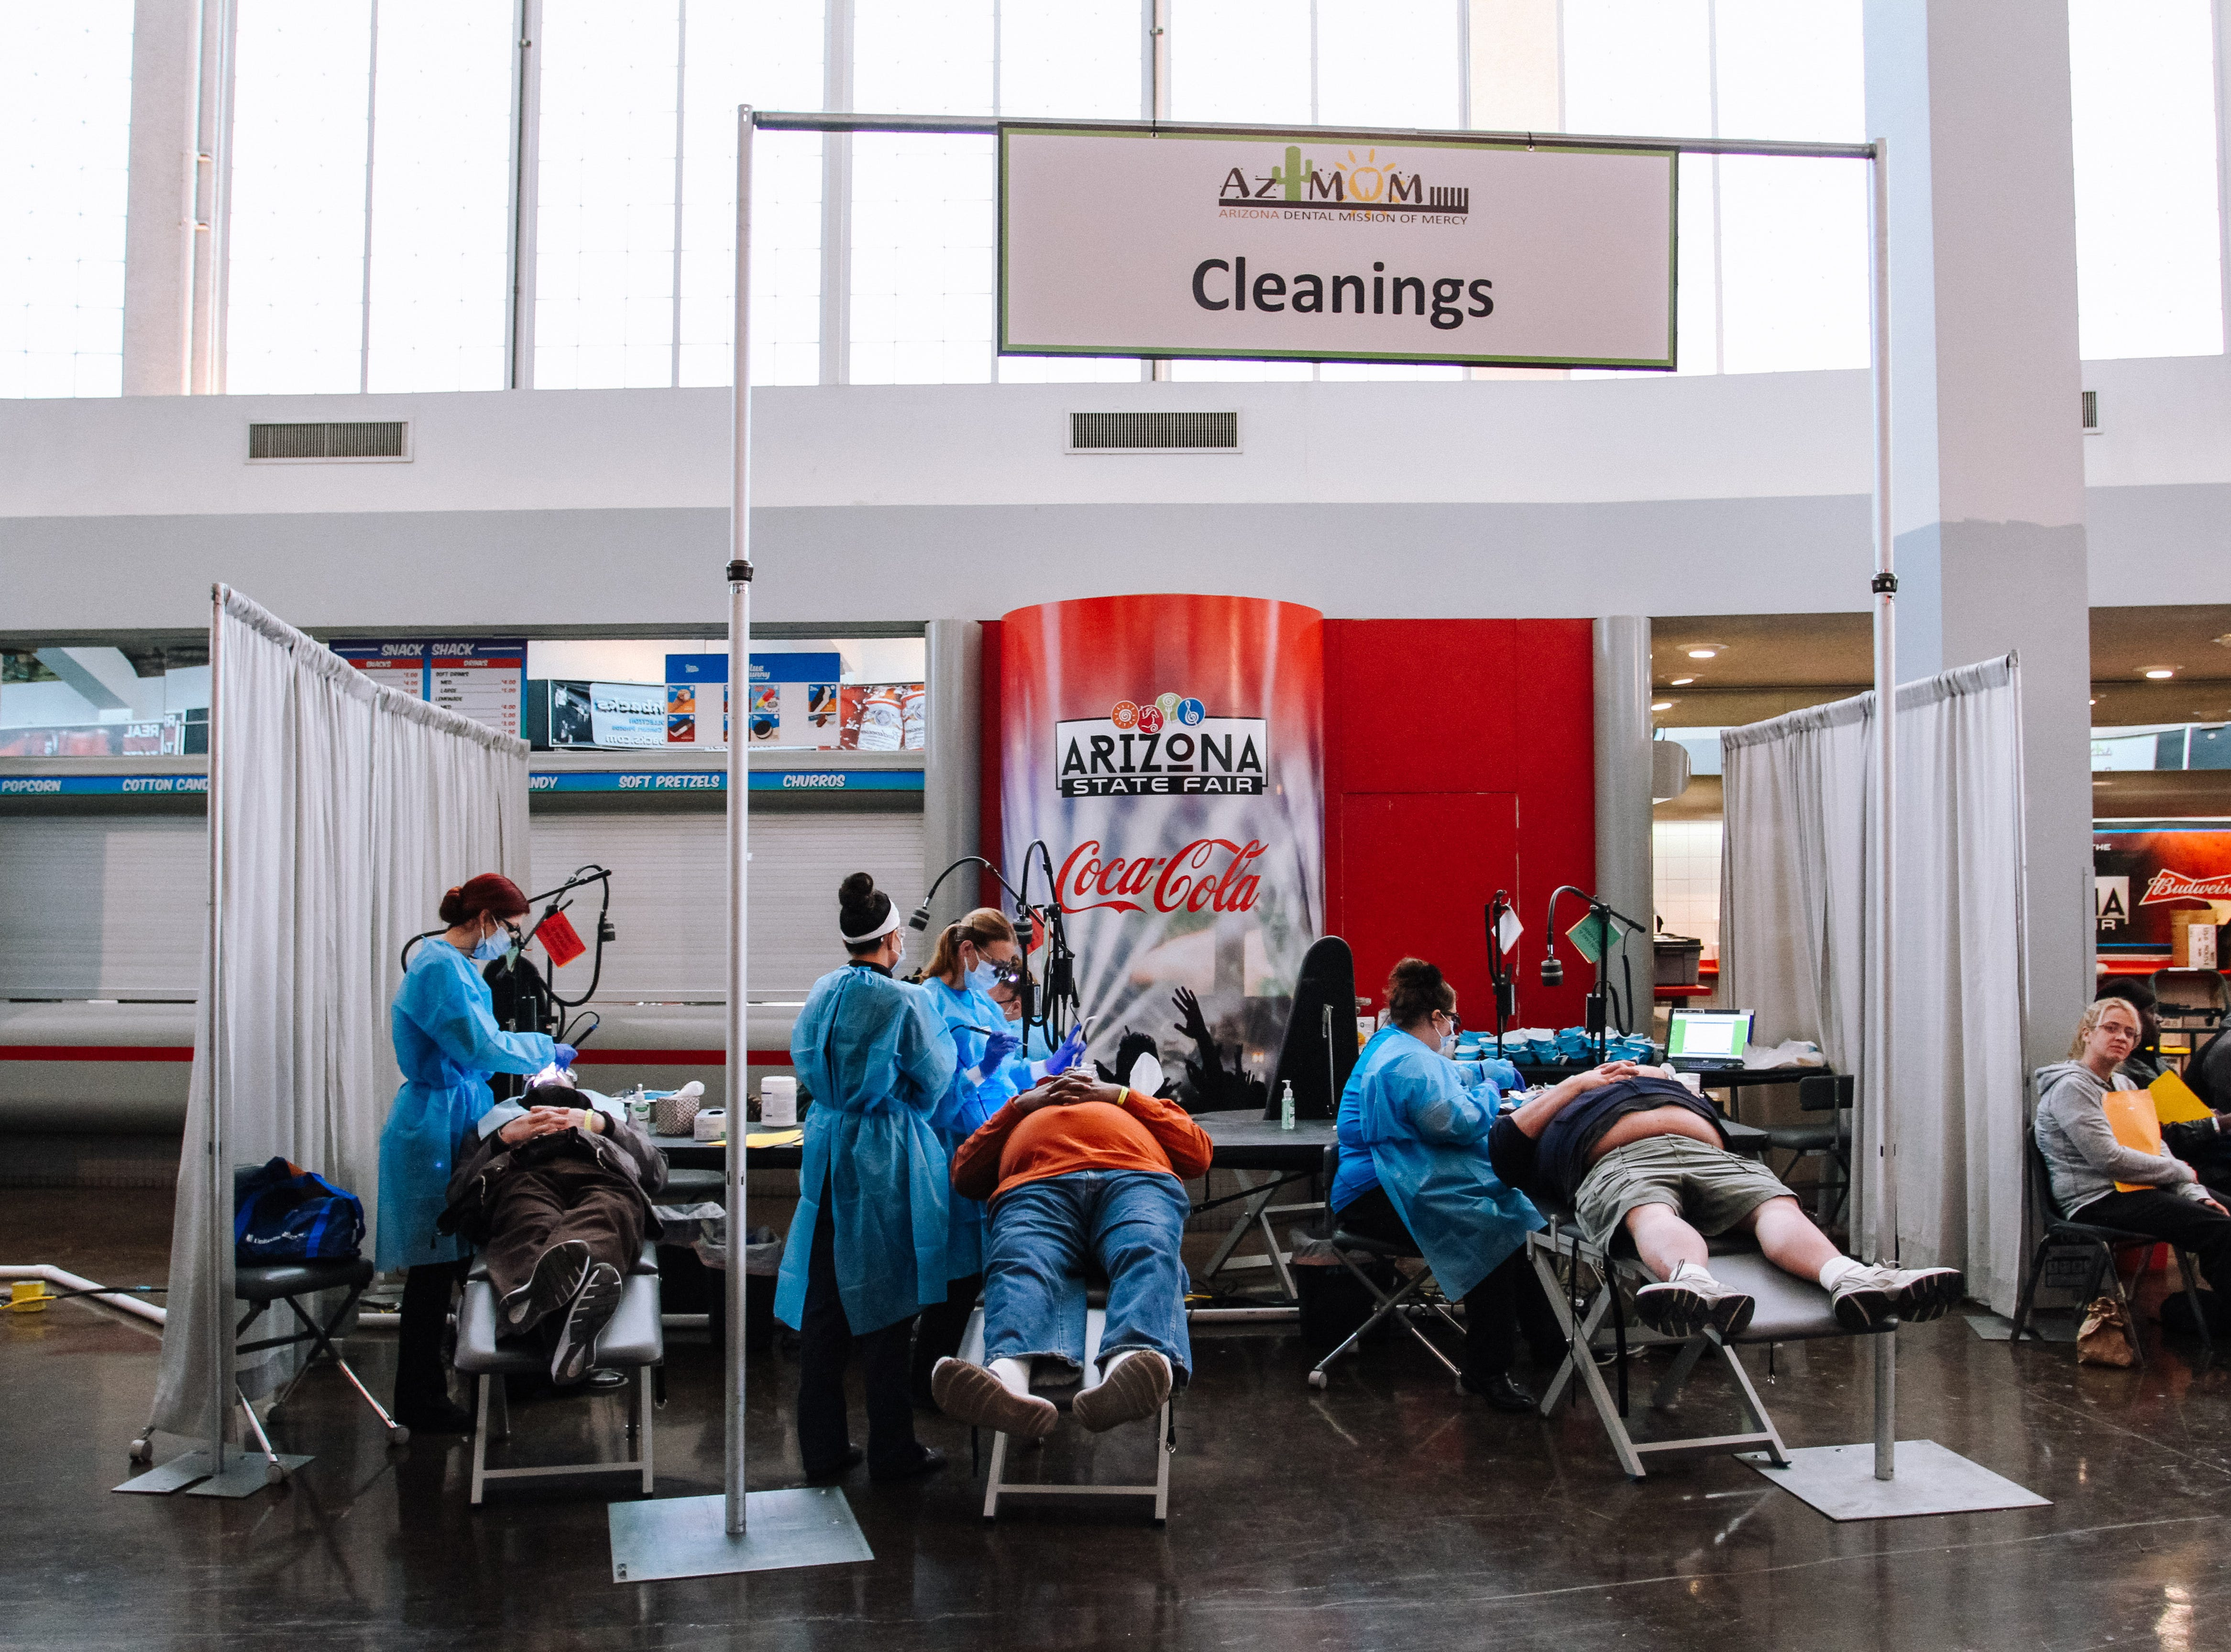 Veterans have dental work done at the 2019 Veterans Stand Down Event at the Arizona State Fairgrounds in Phoenix, Arizona on Friday, Jan. 25, 2019.